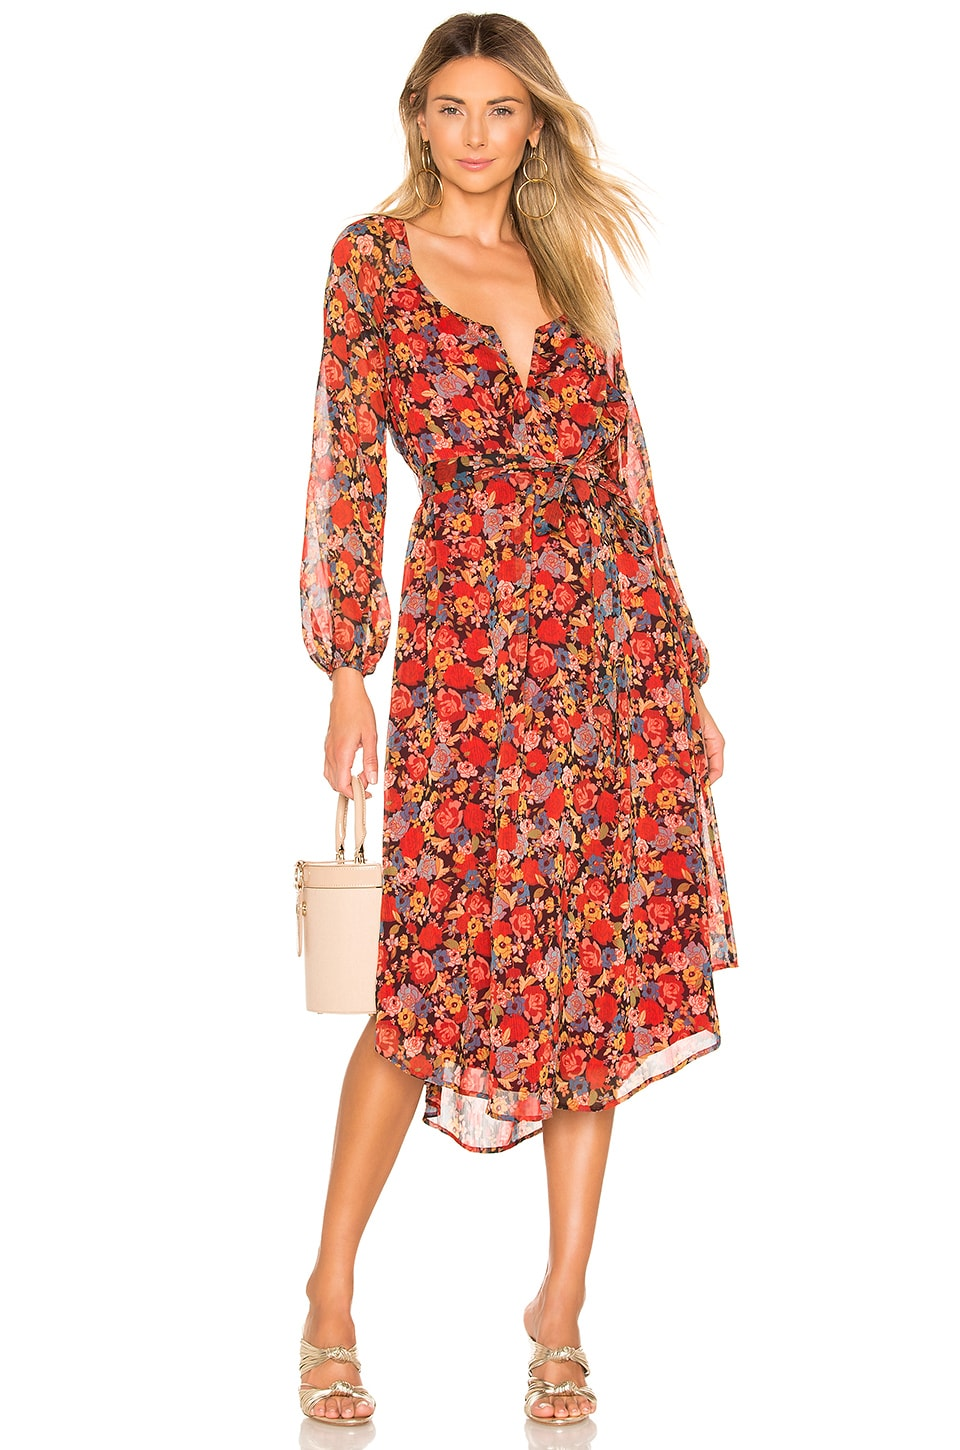 House of Harlow 1960 X REVOLVE Noa Dress in Red Mixed Floral